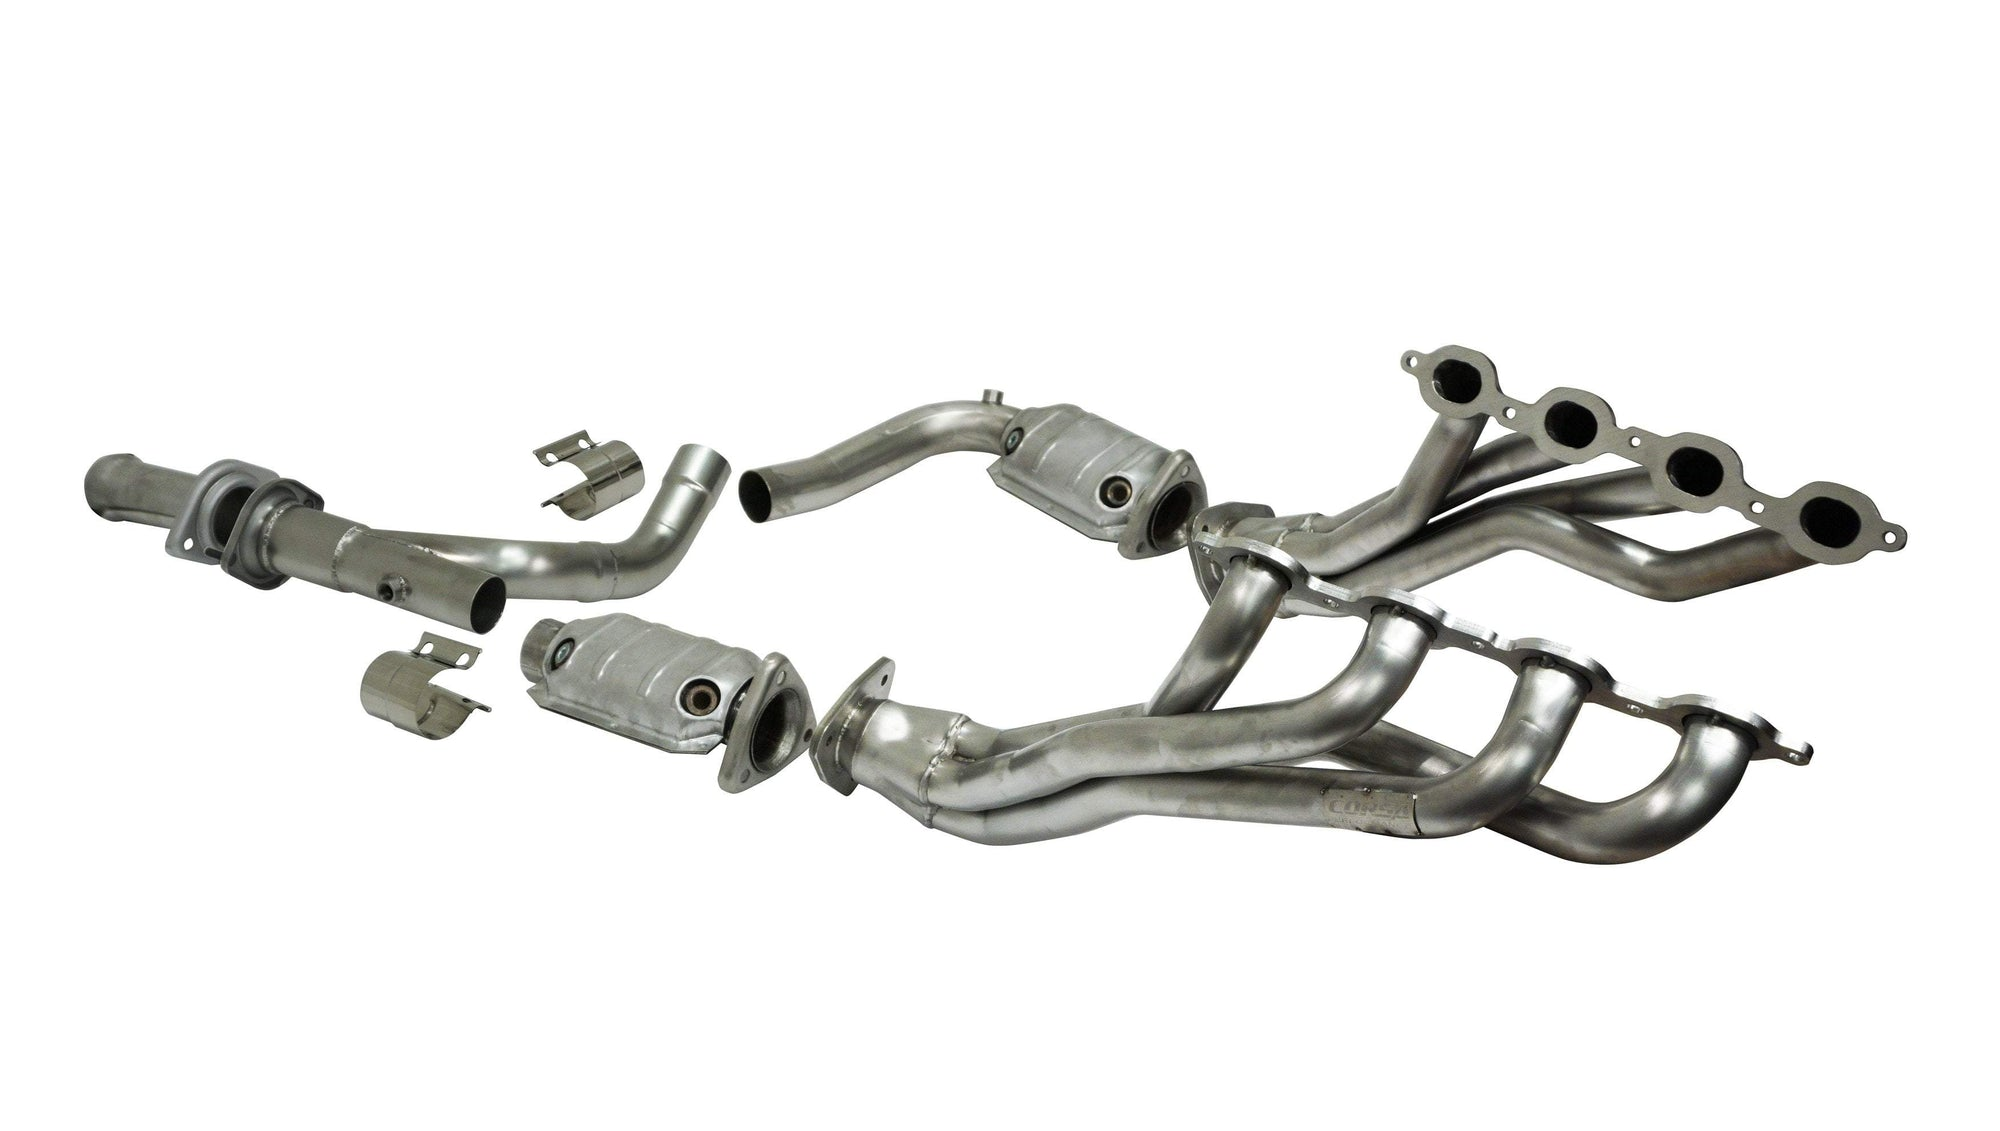 "CORSA PERFORMANCE Headers 2014-2018 Chevrolet Silverado, GMC Sierra, 5.3L V8, 1.75"" x 2.5"" Long Tube Headers and Catted Connection Pipes (16329)"